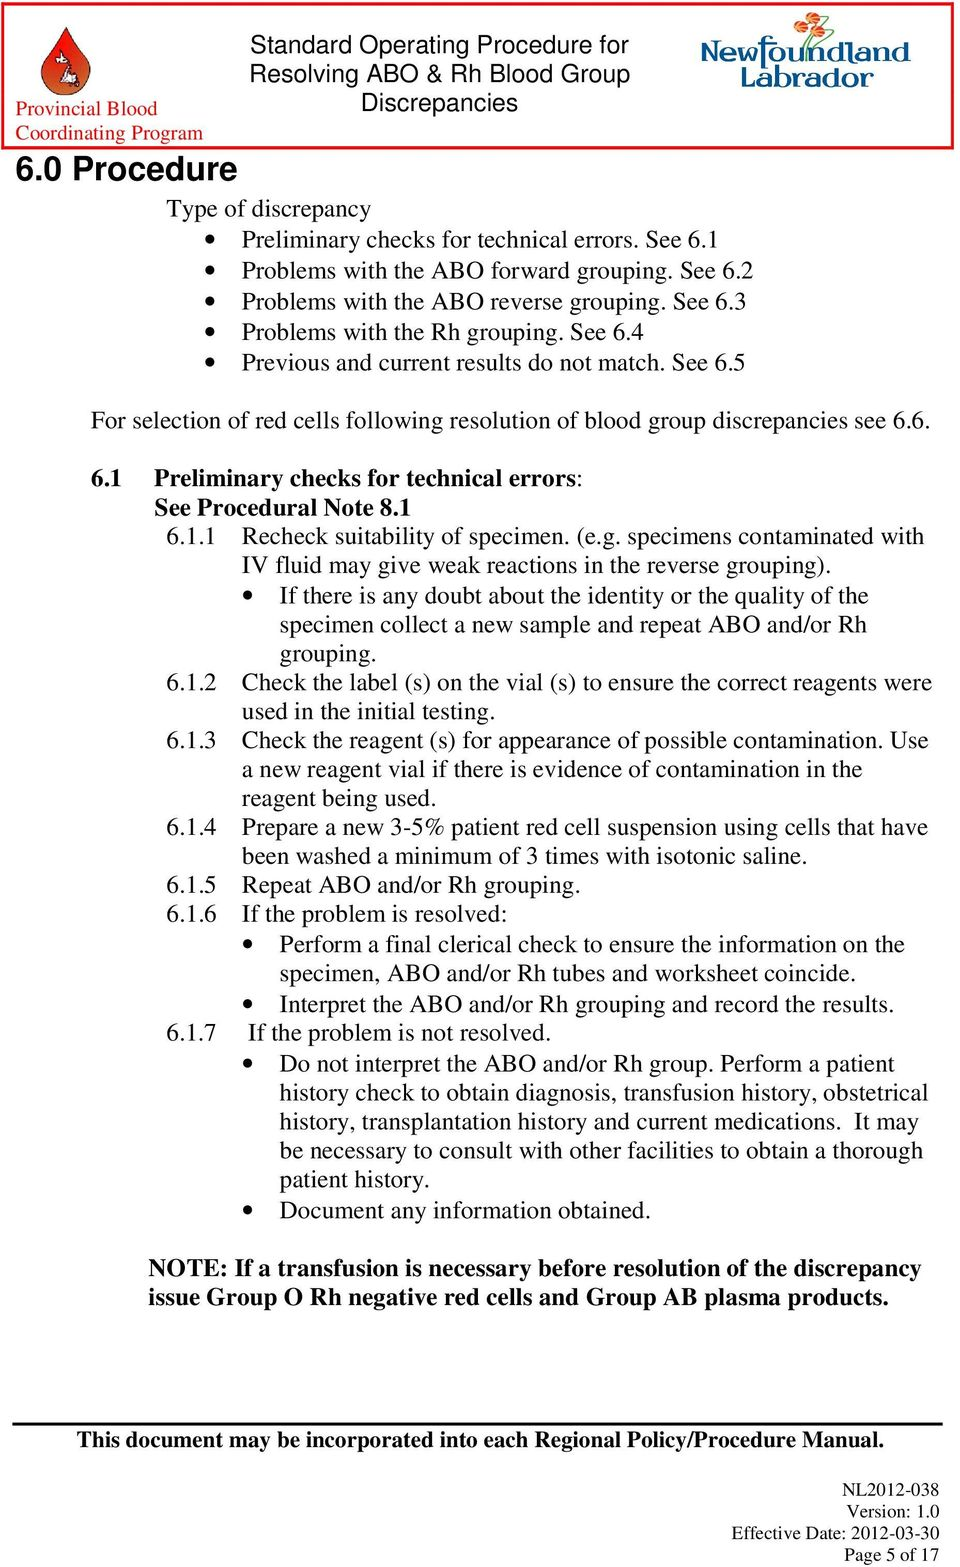 STANDARD OPERATING PROCEDURE FOR RESOLVING ABO & Rh BLOOD GROUP